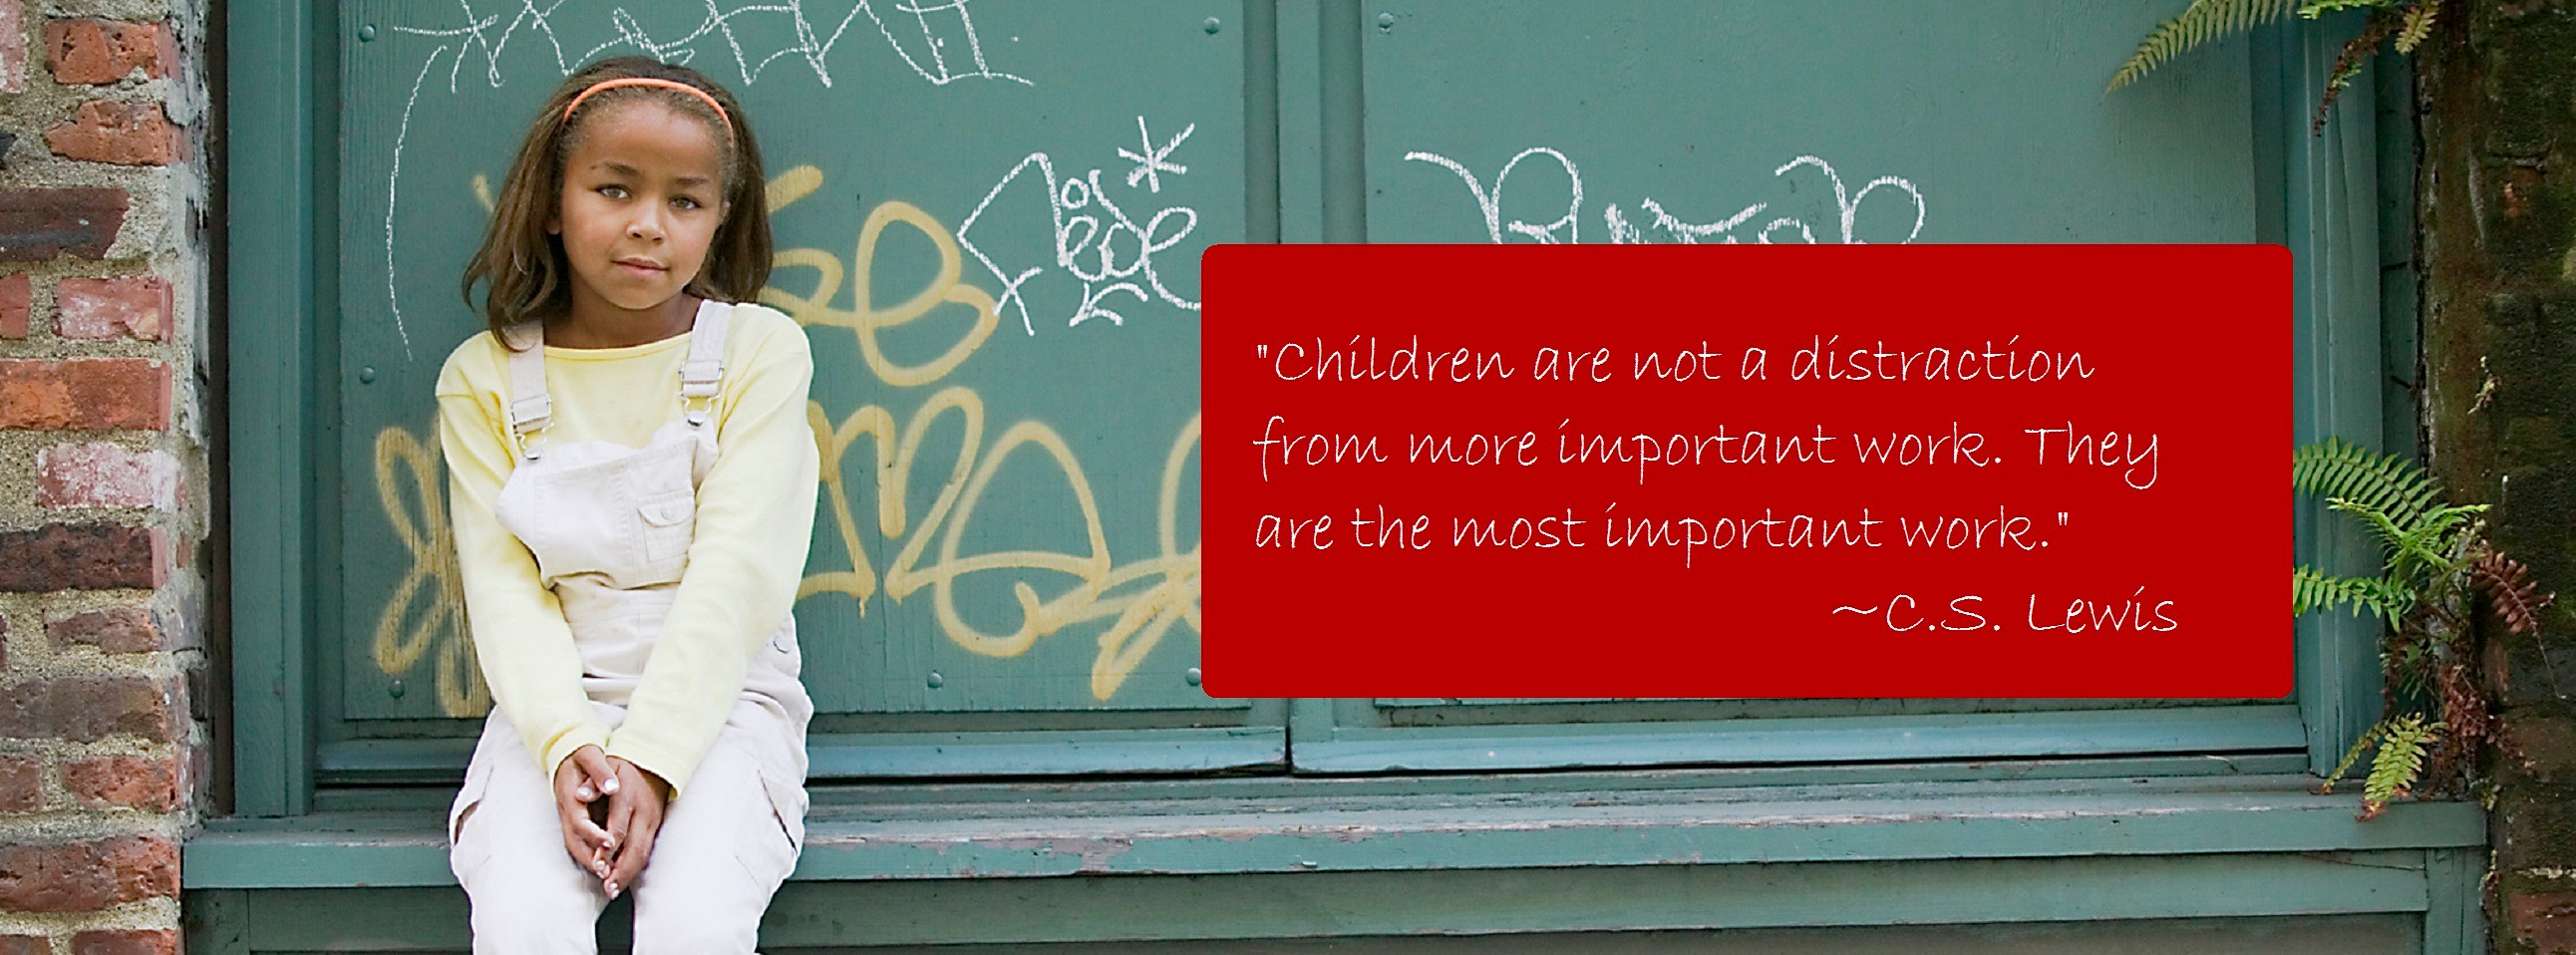 CASA child with C.S. Lewis quote